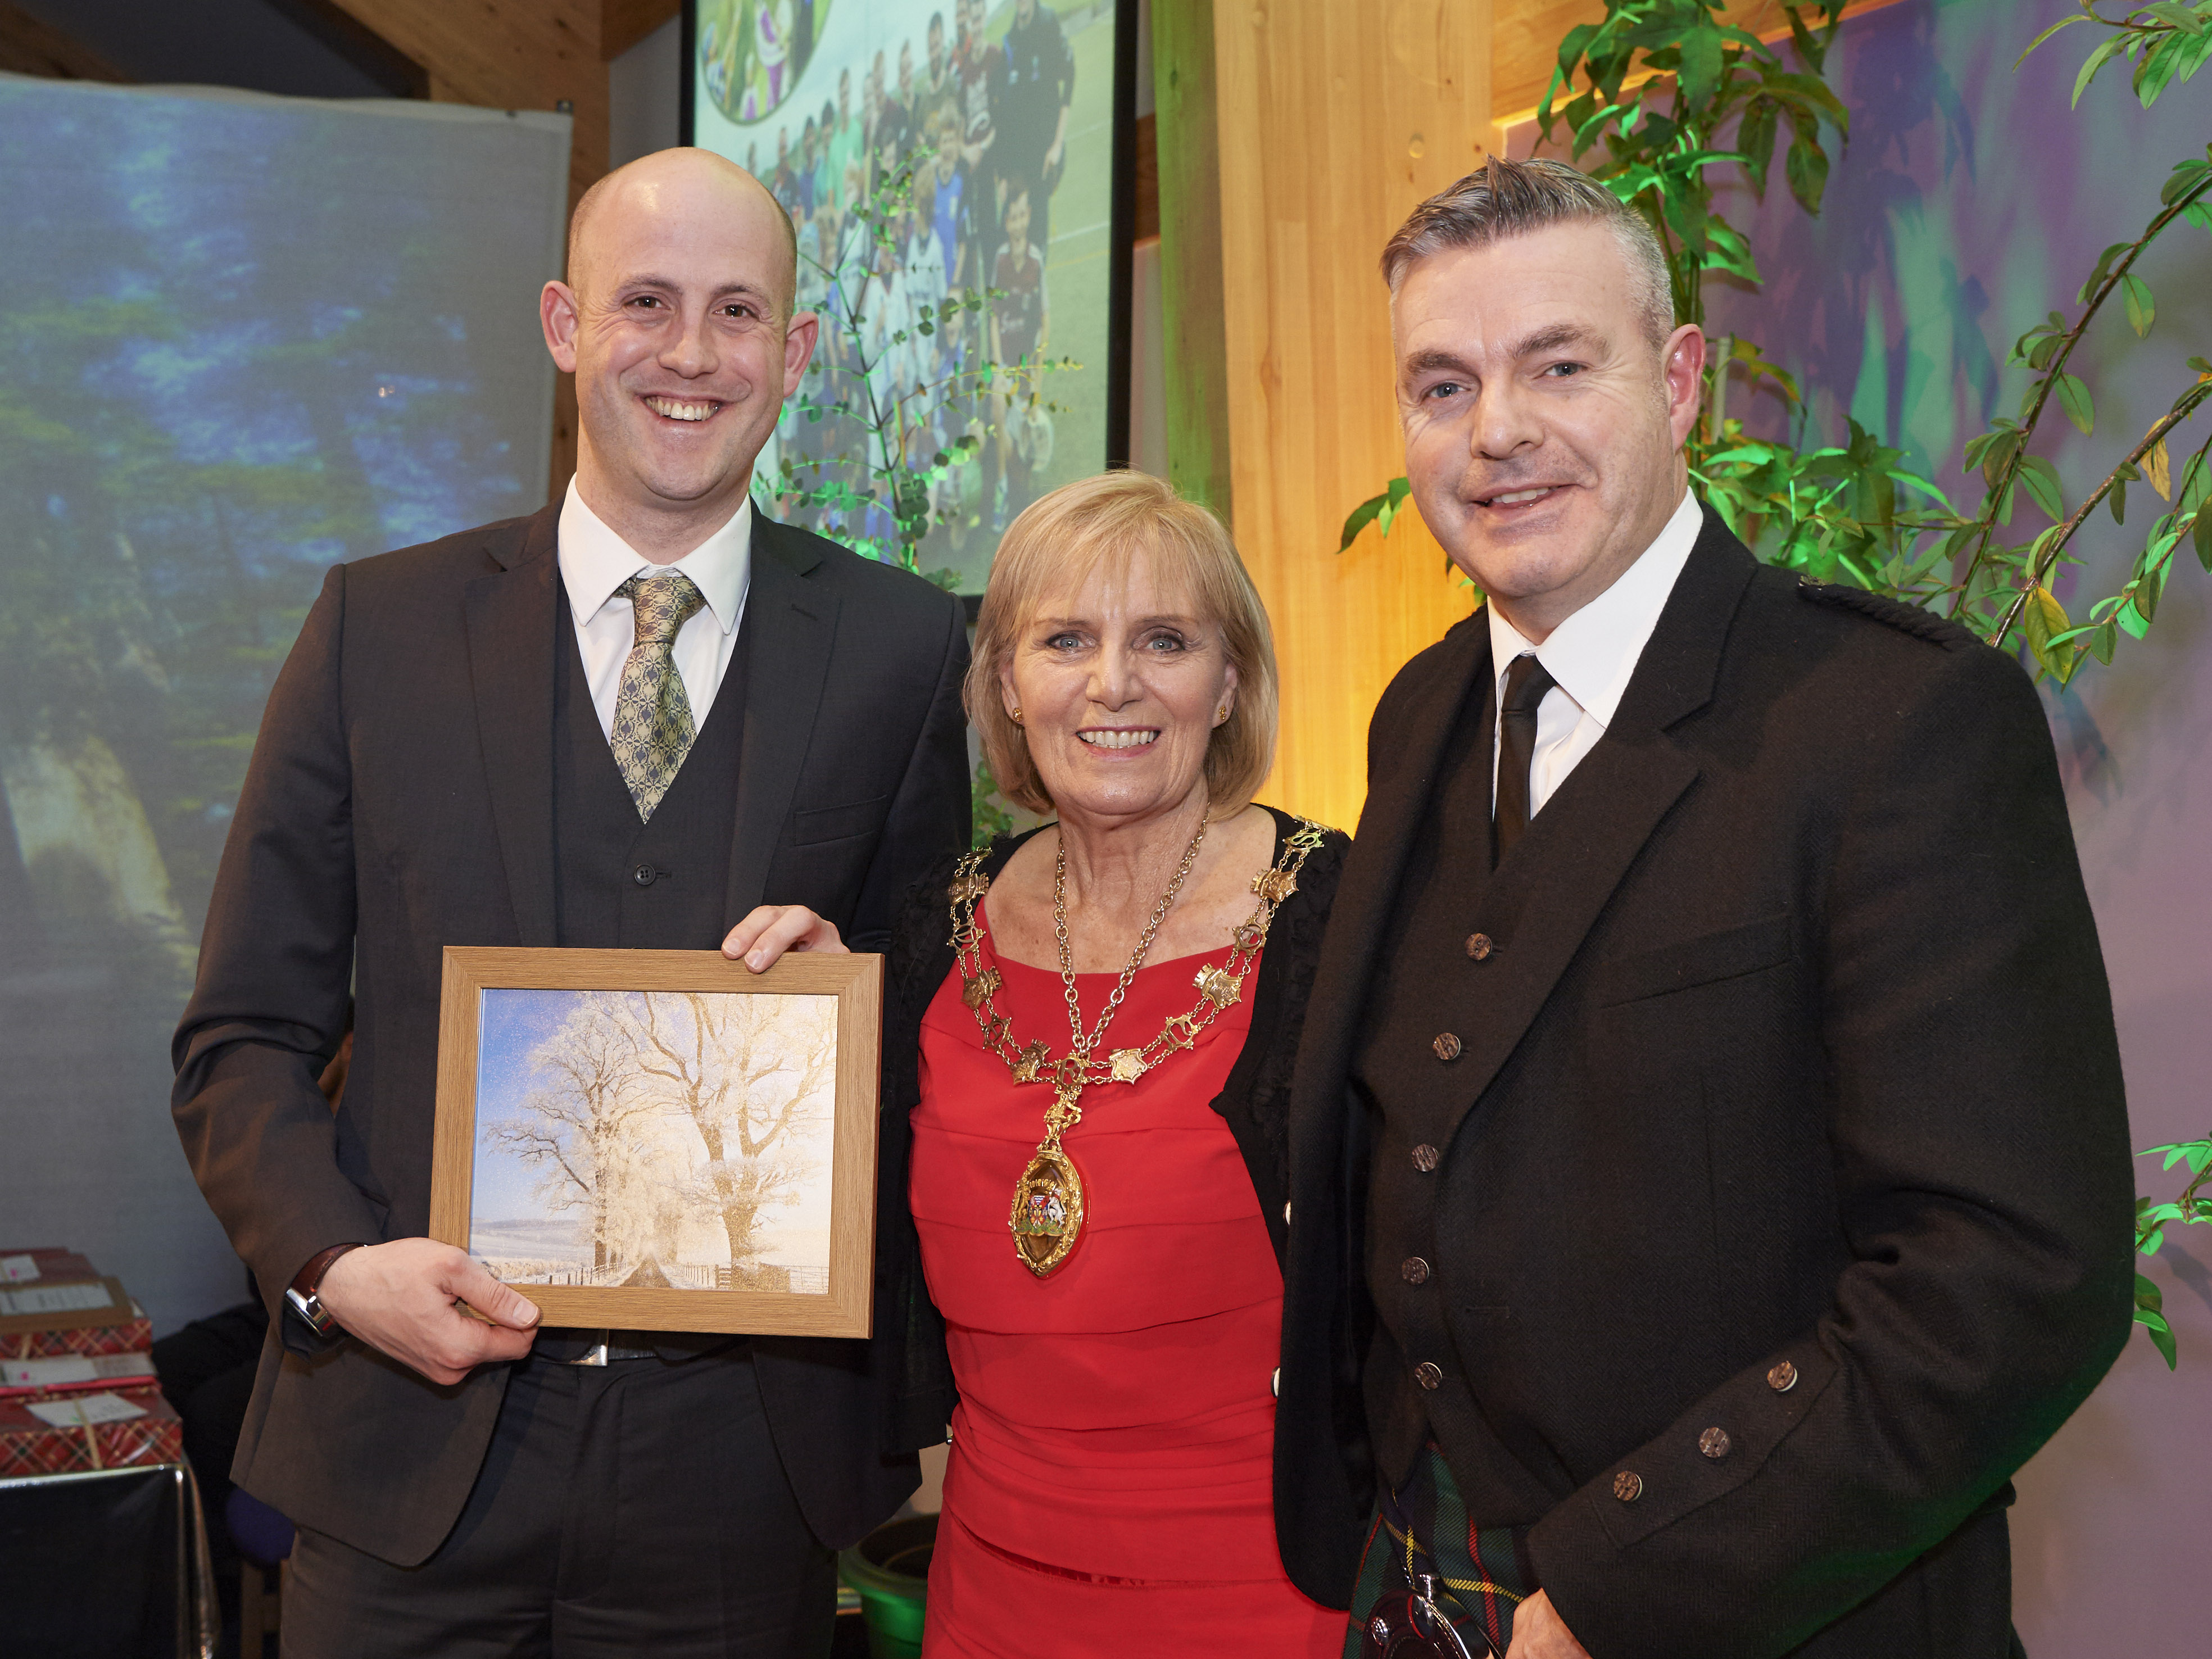 Eoghan Stewart & Iomain Cholmcille Recognised By Highland Council